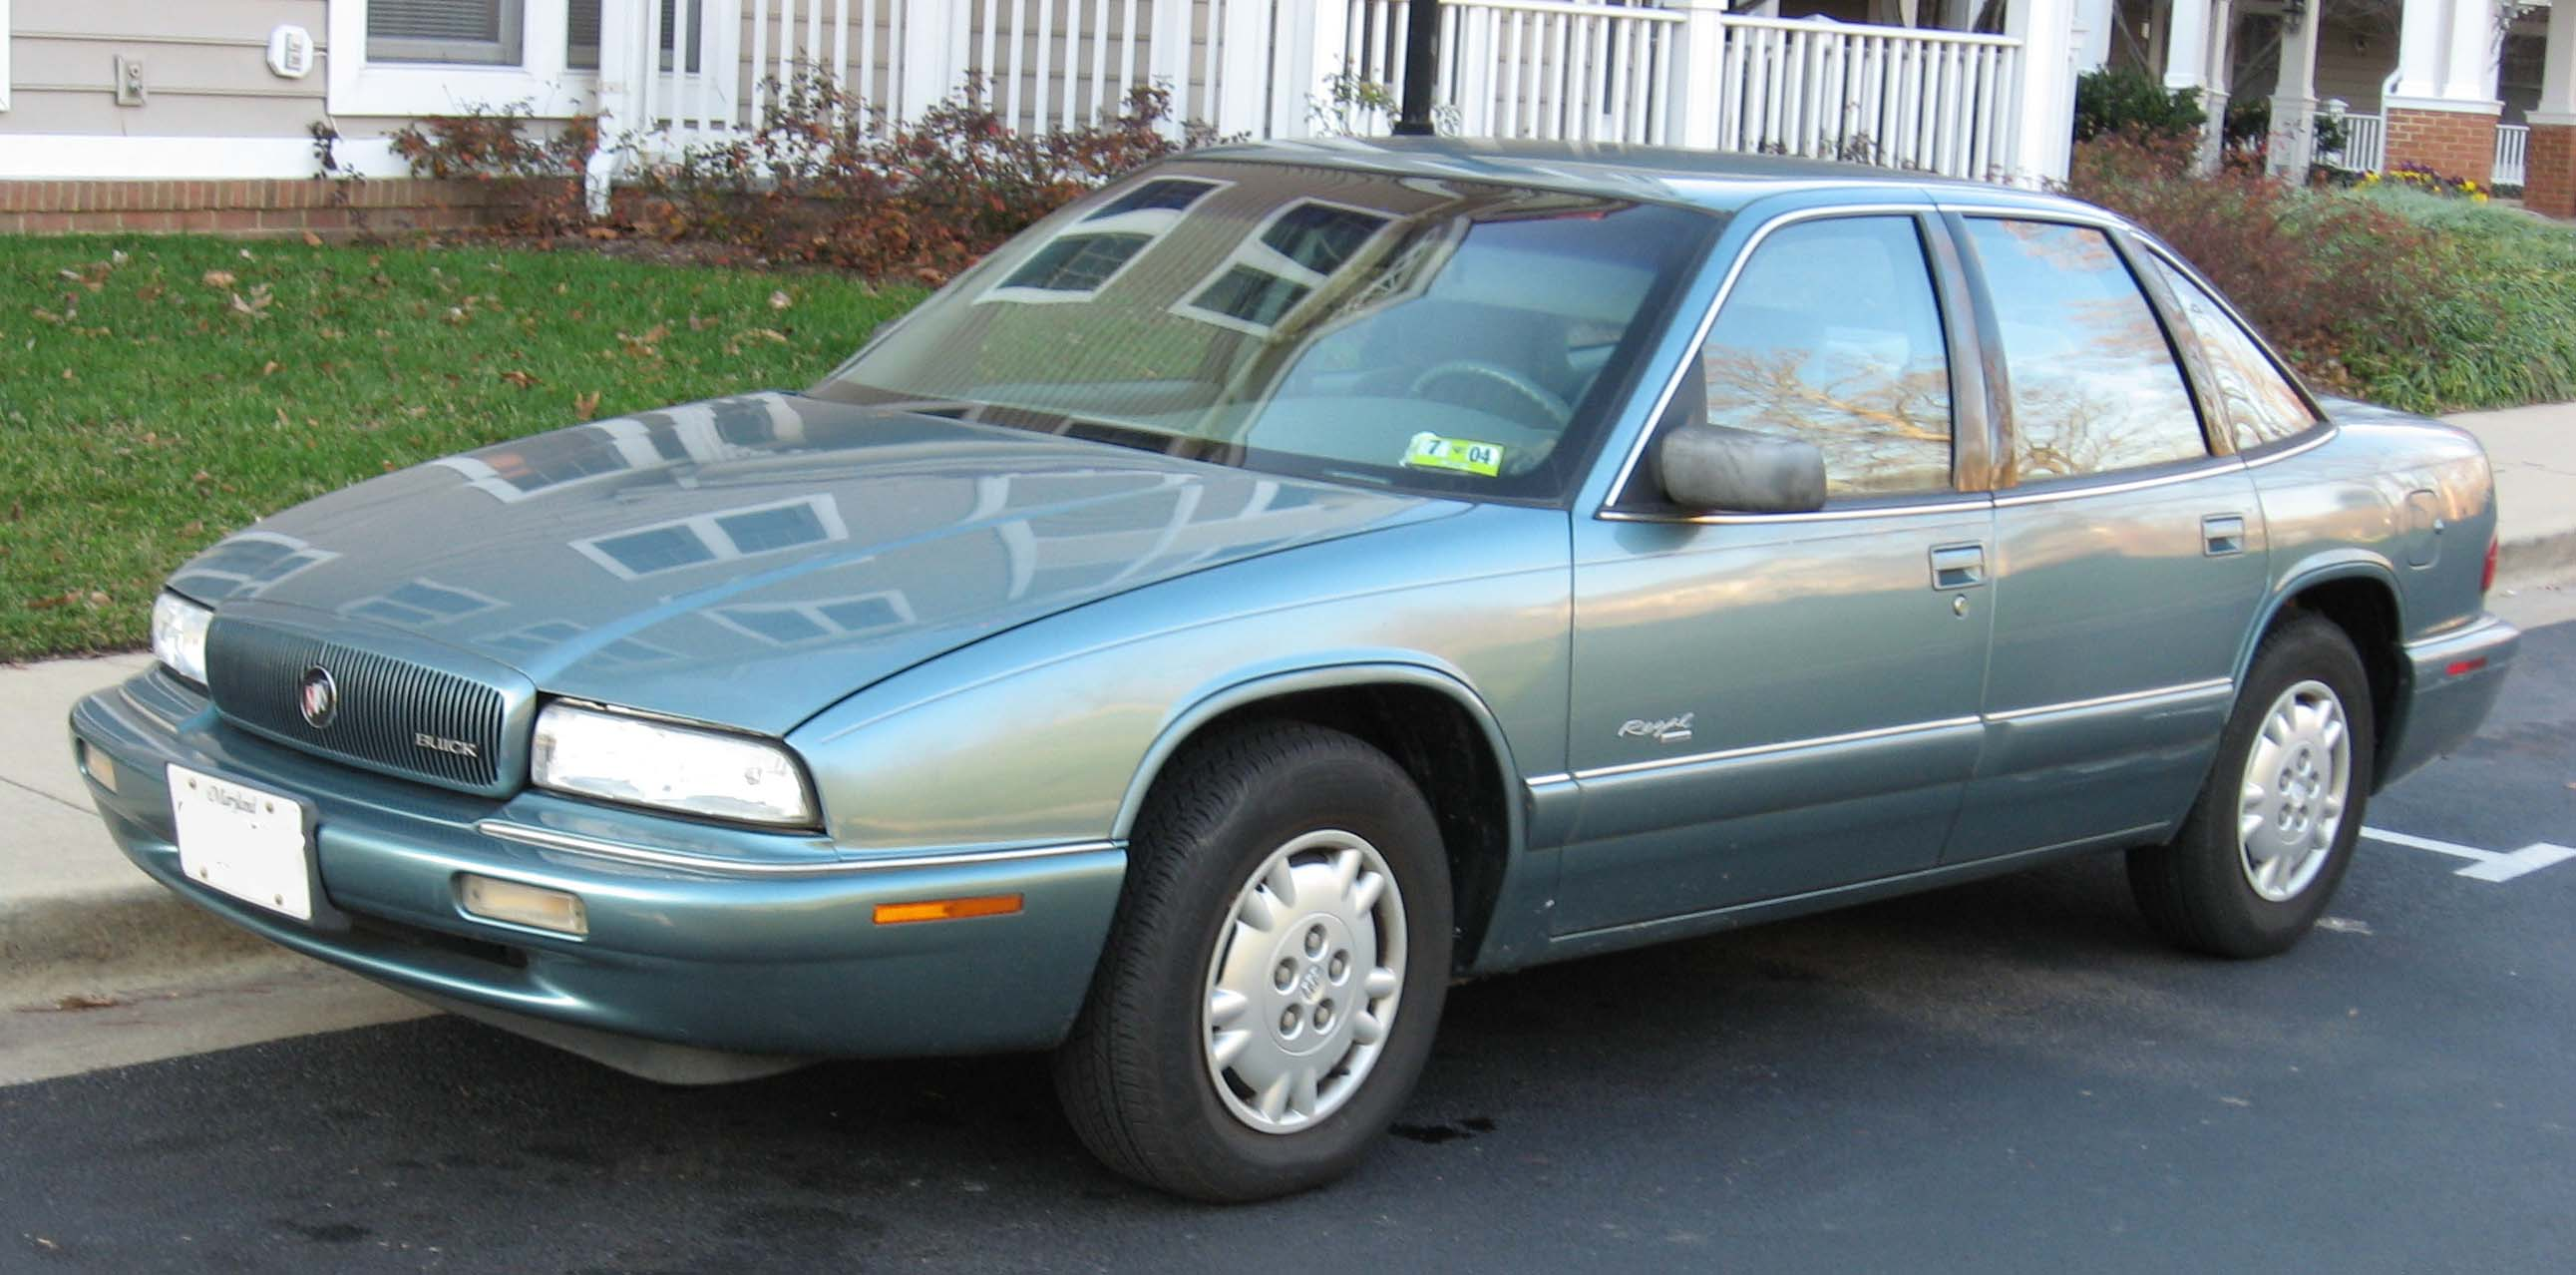 1993 Buick Regal #2